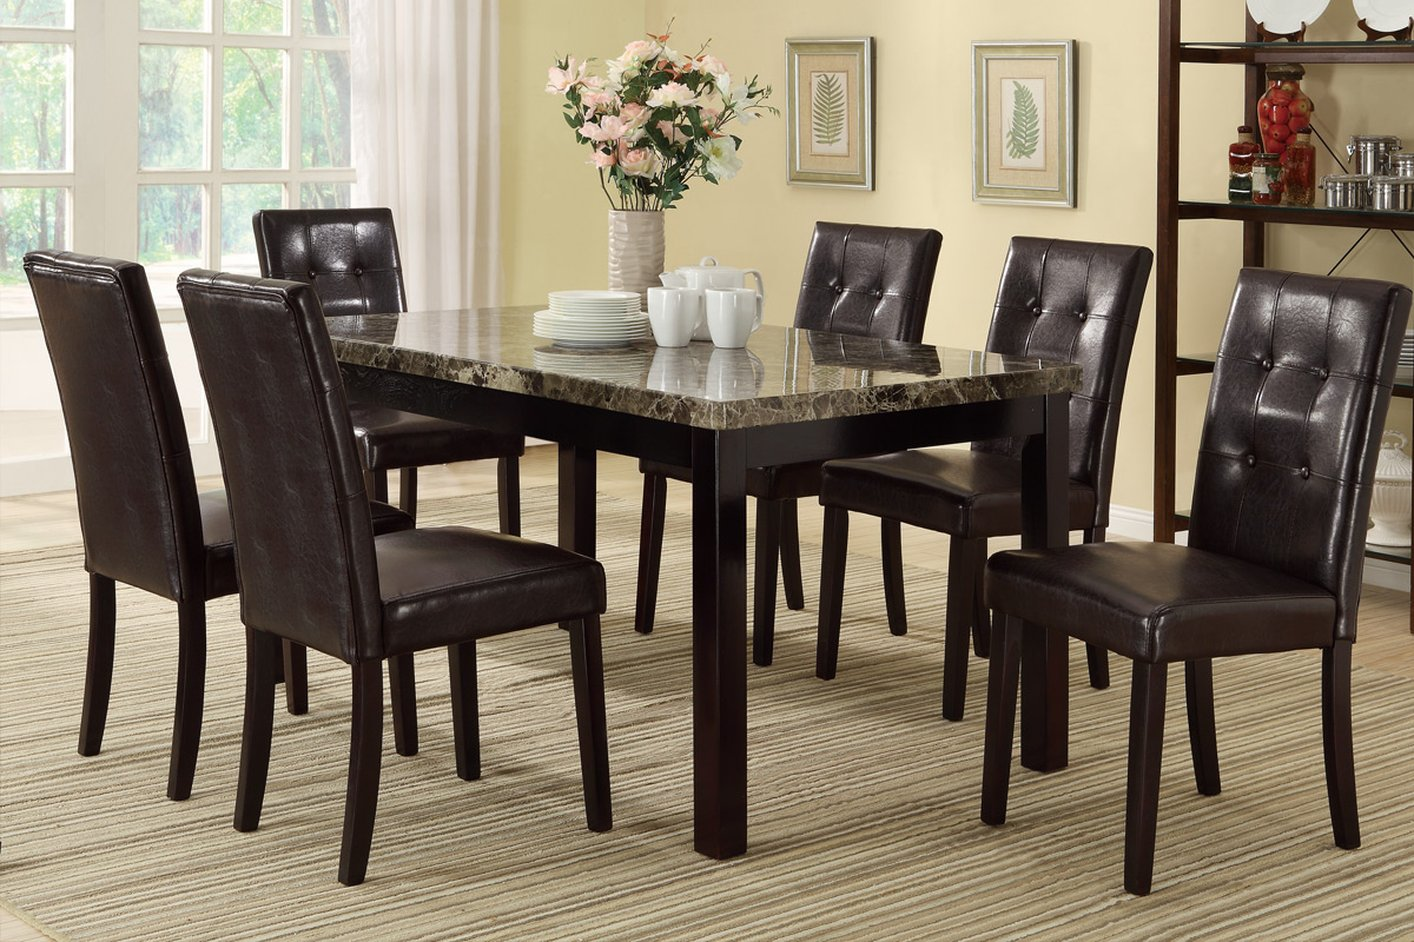 Brown leather dining chair steal a sofa furniture outlet for Brown leather dining room chairs